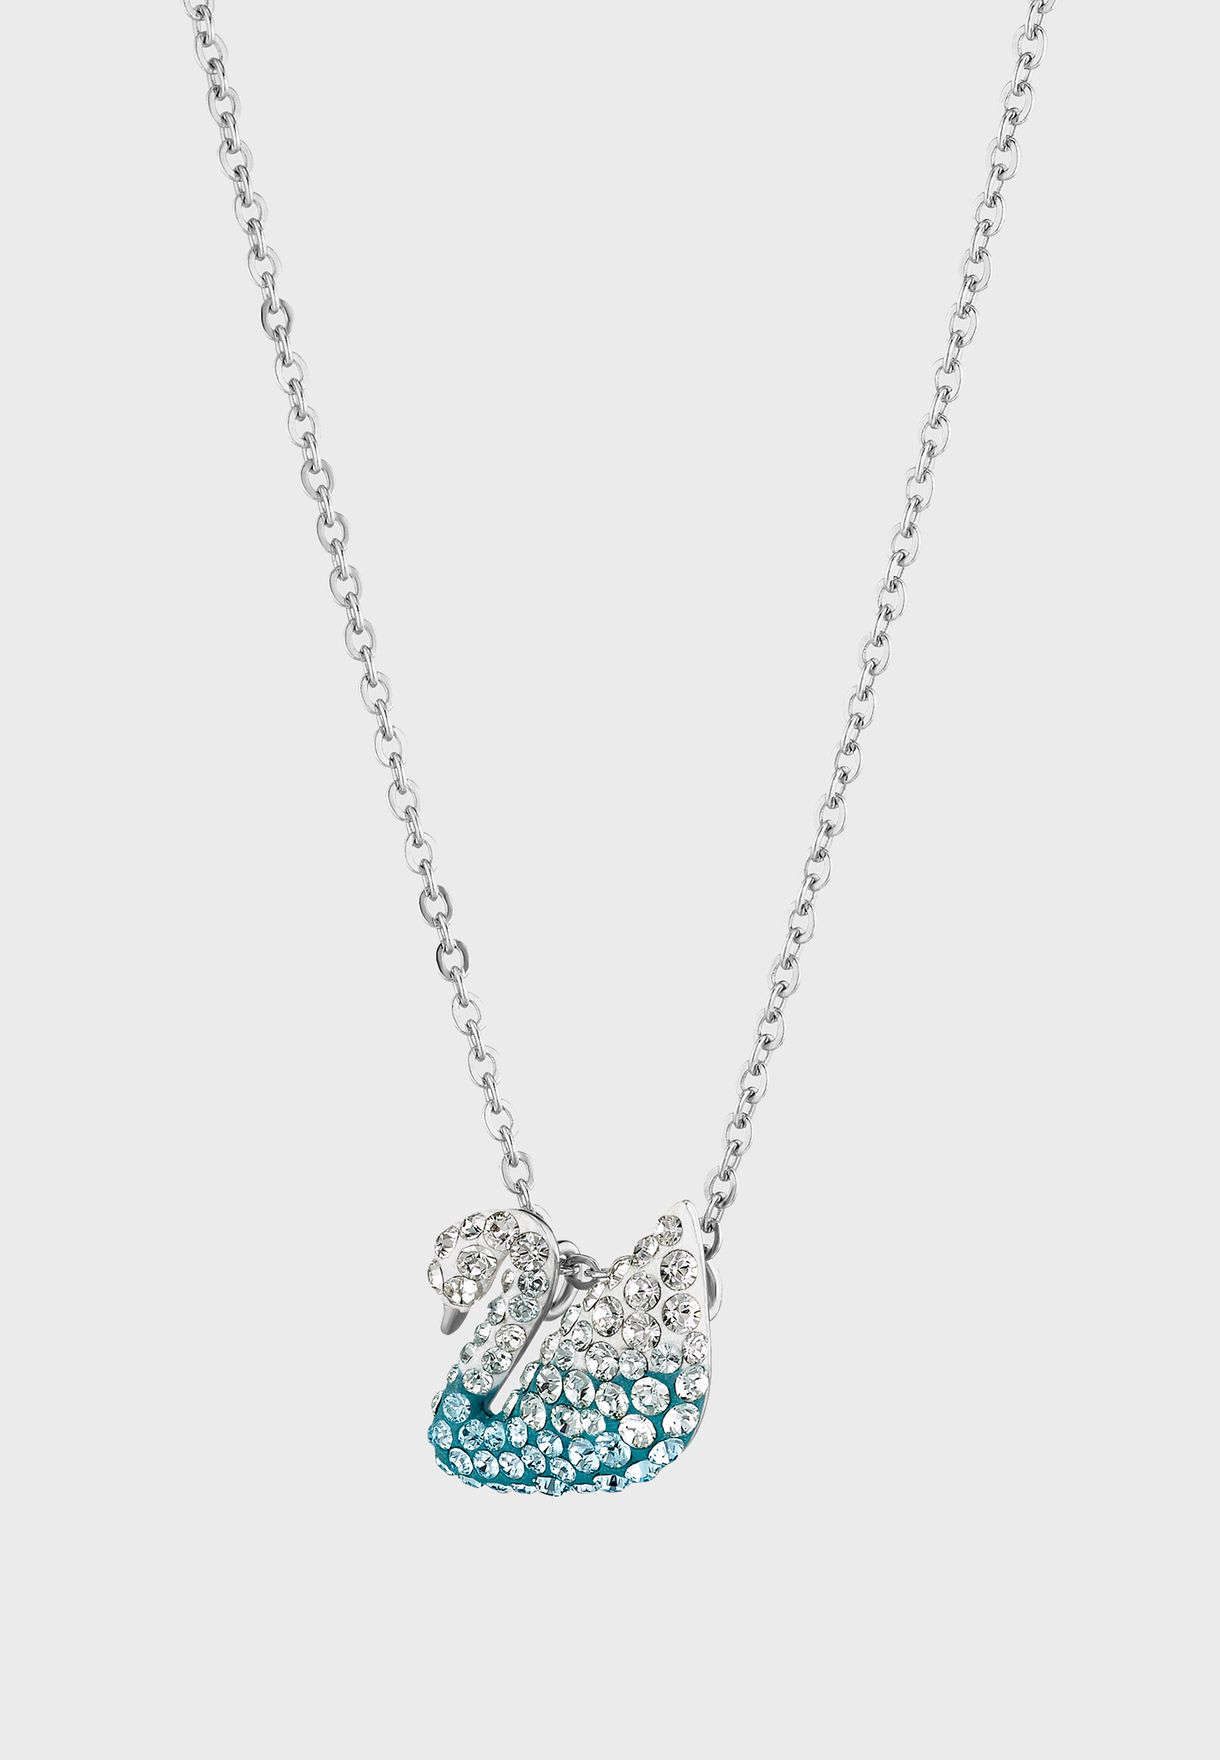 Iconic Swan Pendant Necklace